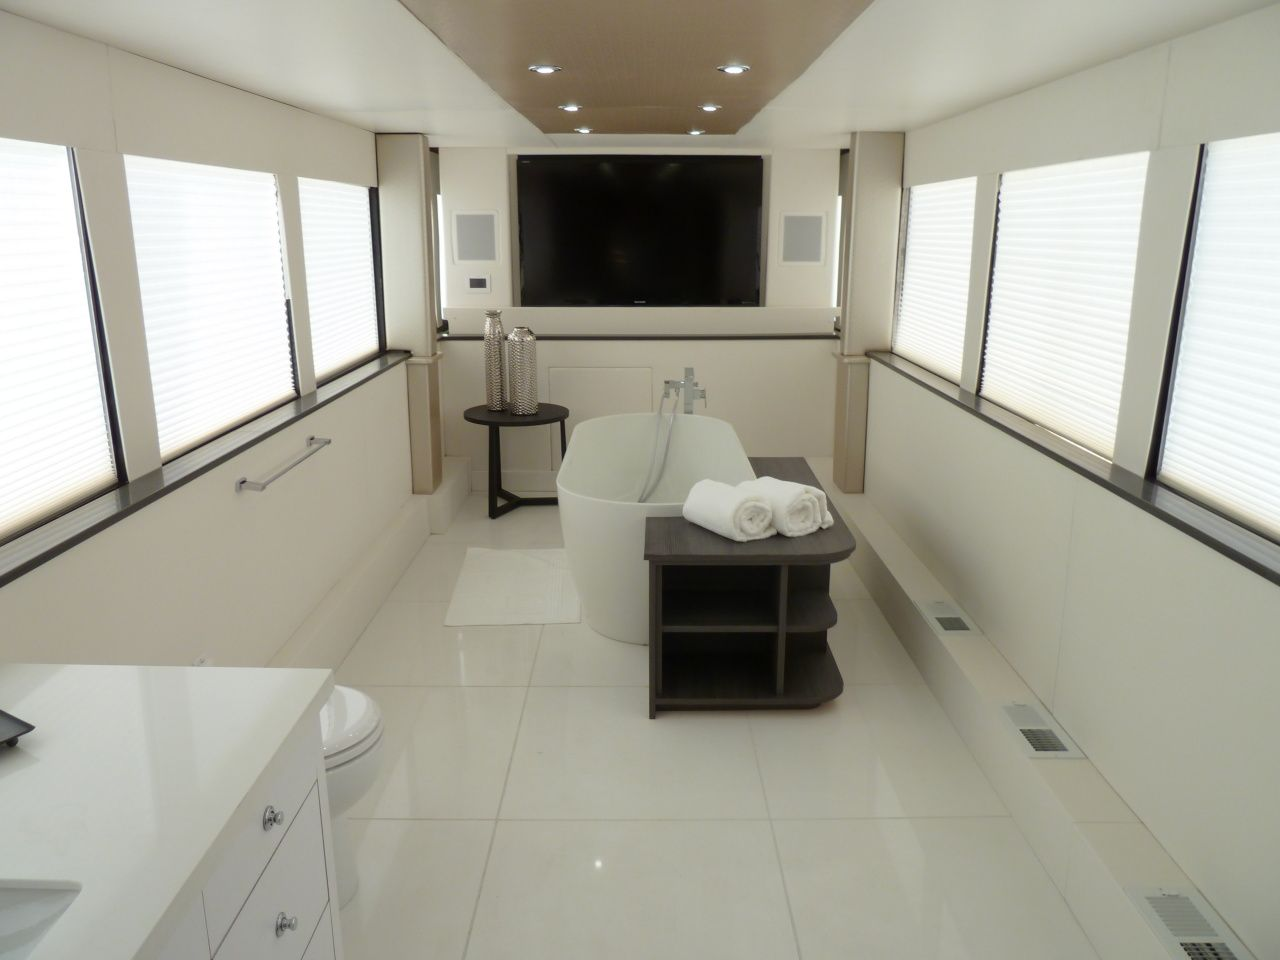 Flat Screen TV In The Bathroom Of Simon Cowellu0027s Trailer. Check Out More On  GACu0027s